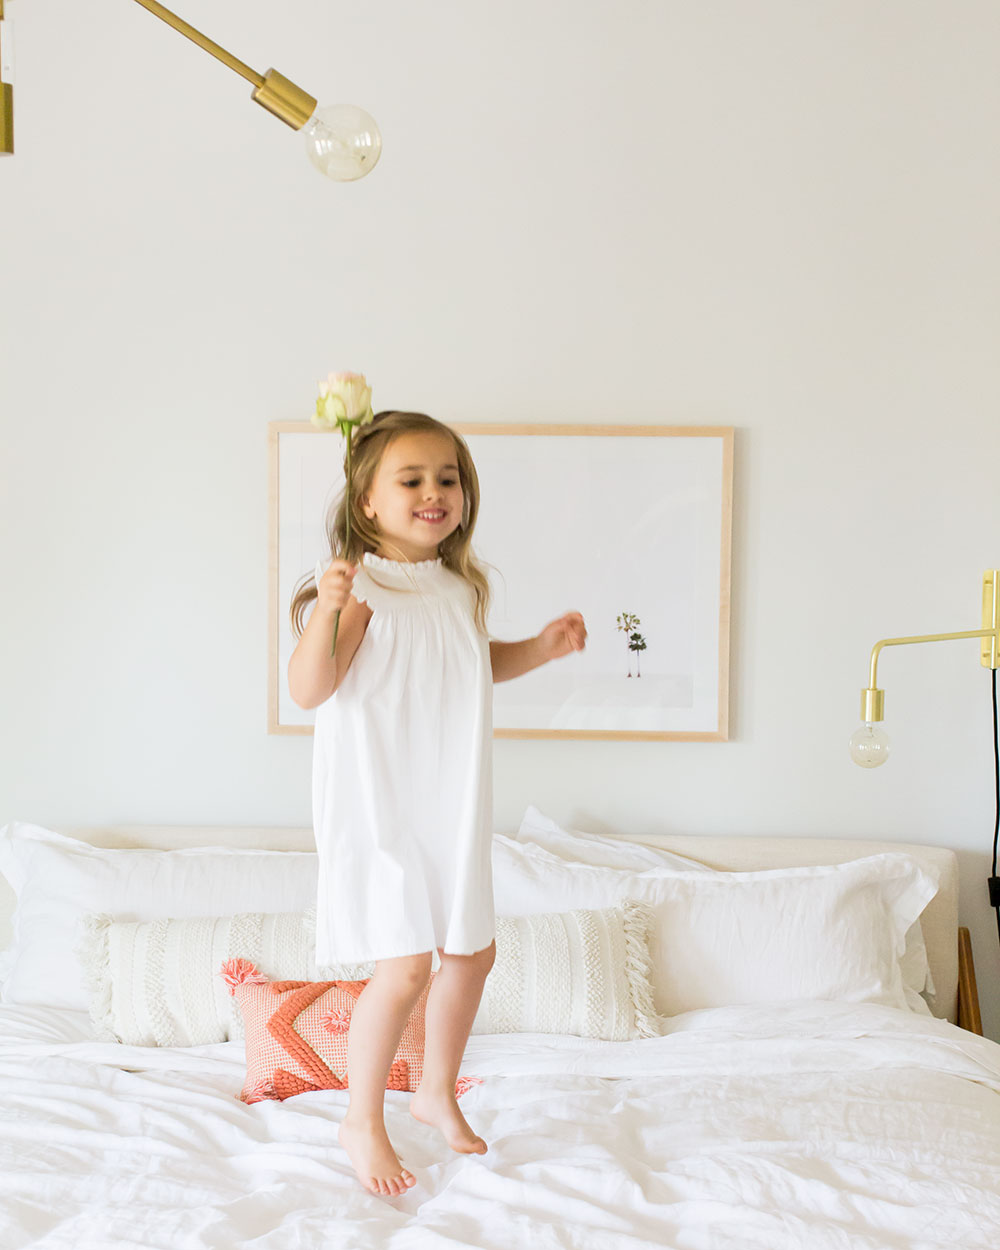 jumping for joy in our master bedroom reveal | thelovedesignedllife.com #theldlhome #masterbedroom #childhood